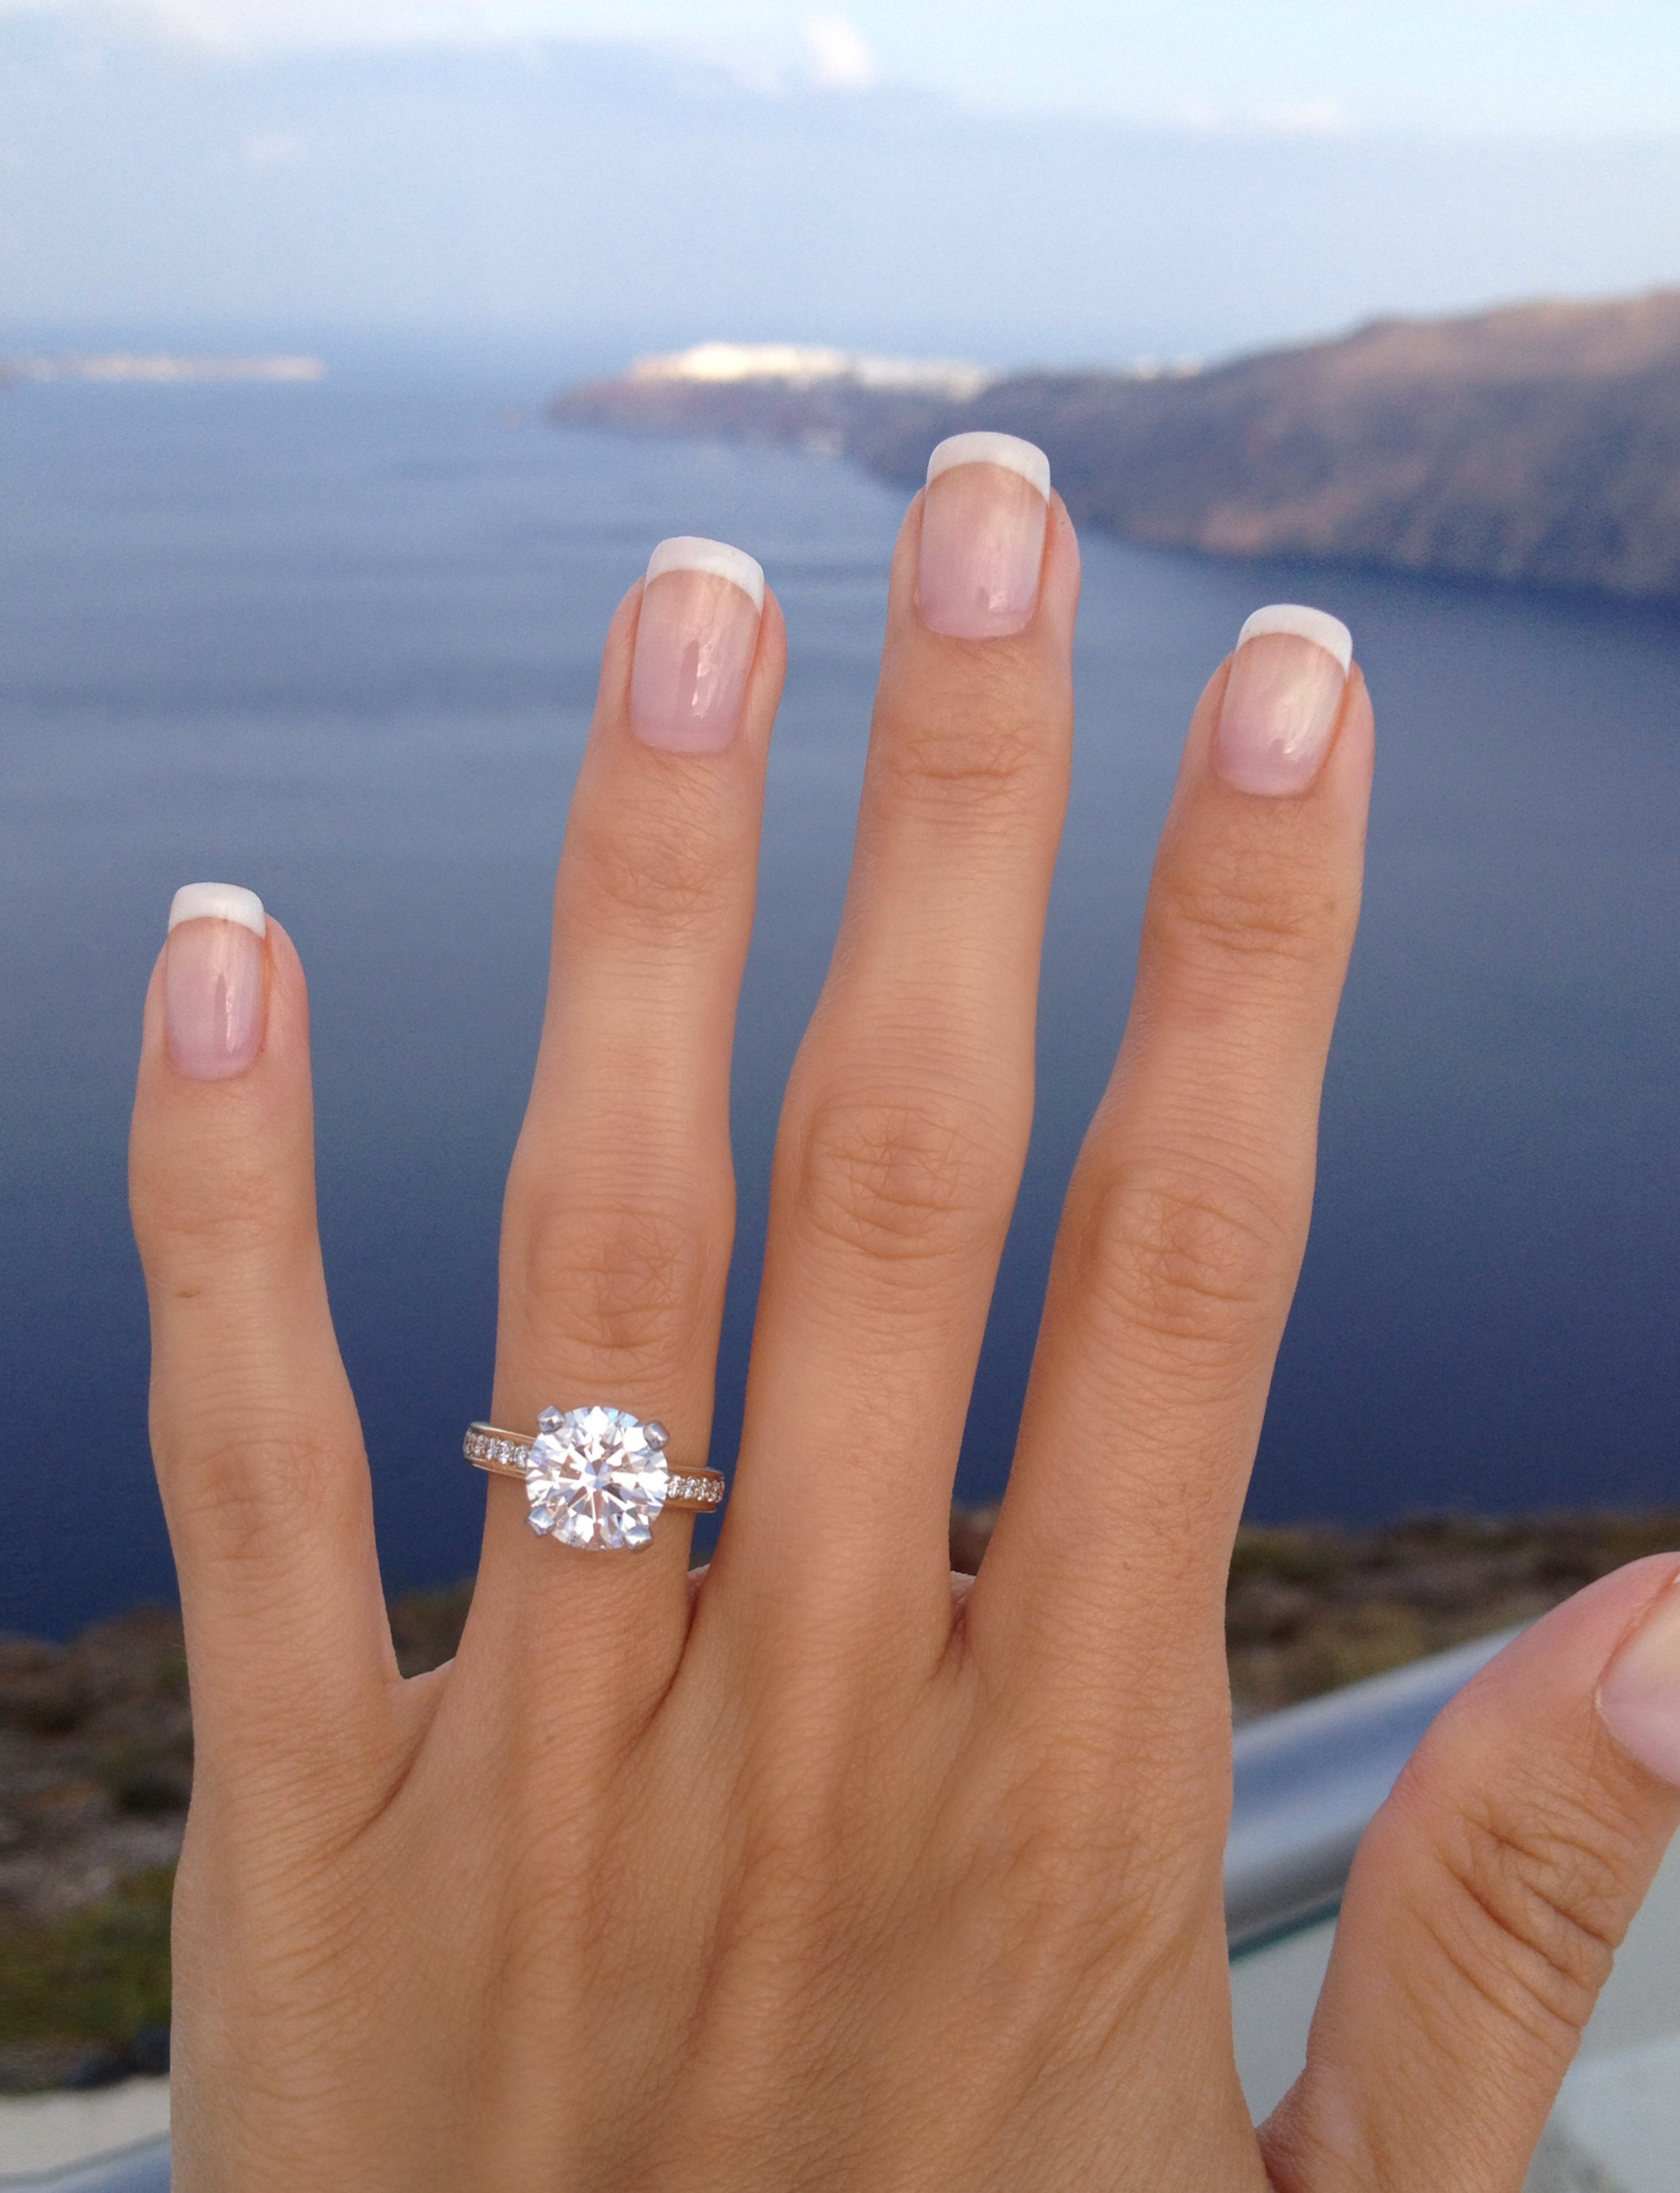 Image 3 of Jenna and Eric's Proposal in Greece